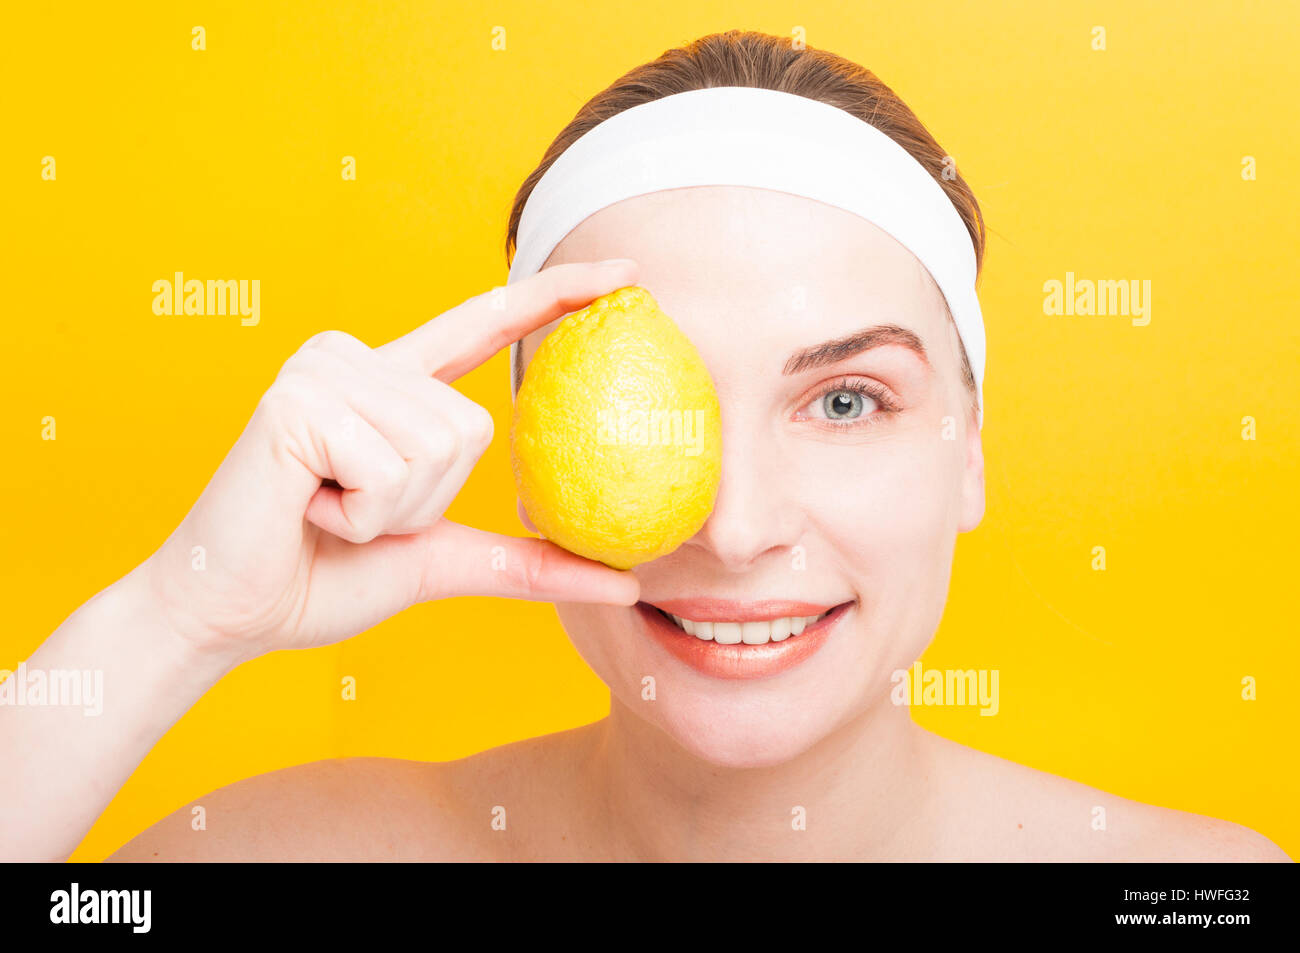 Pretty female covering her eye with a fresh lemon as purity and wellbeing concept isolated on yellow background - Stock Image